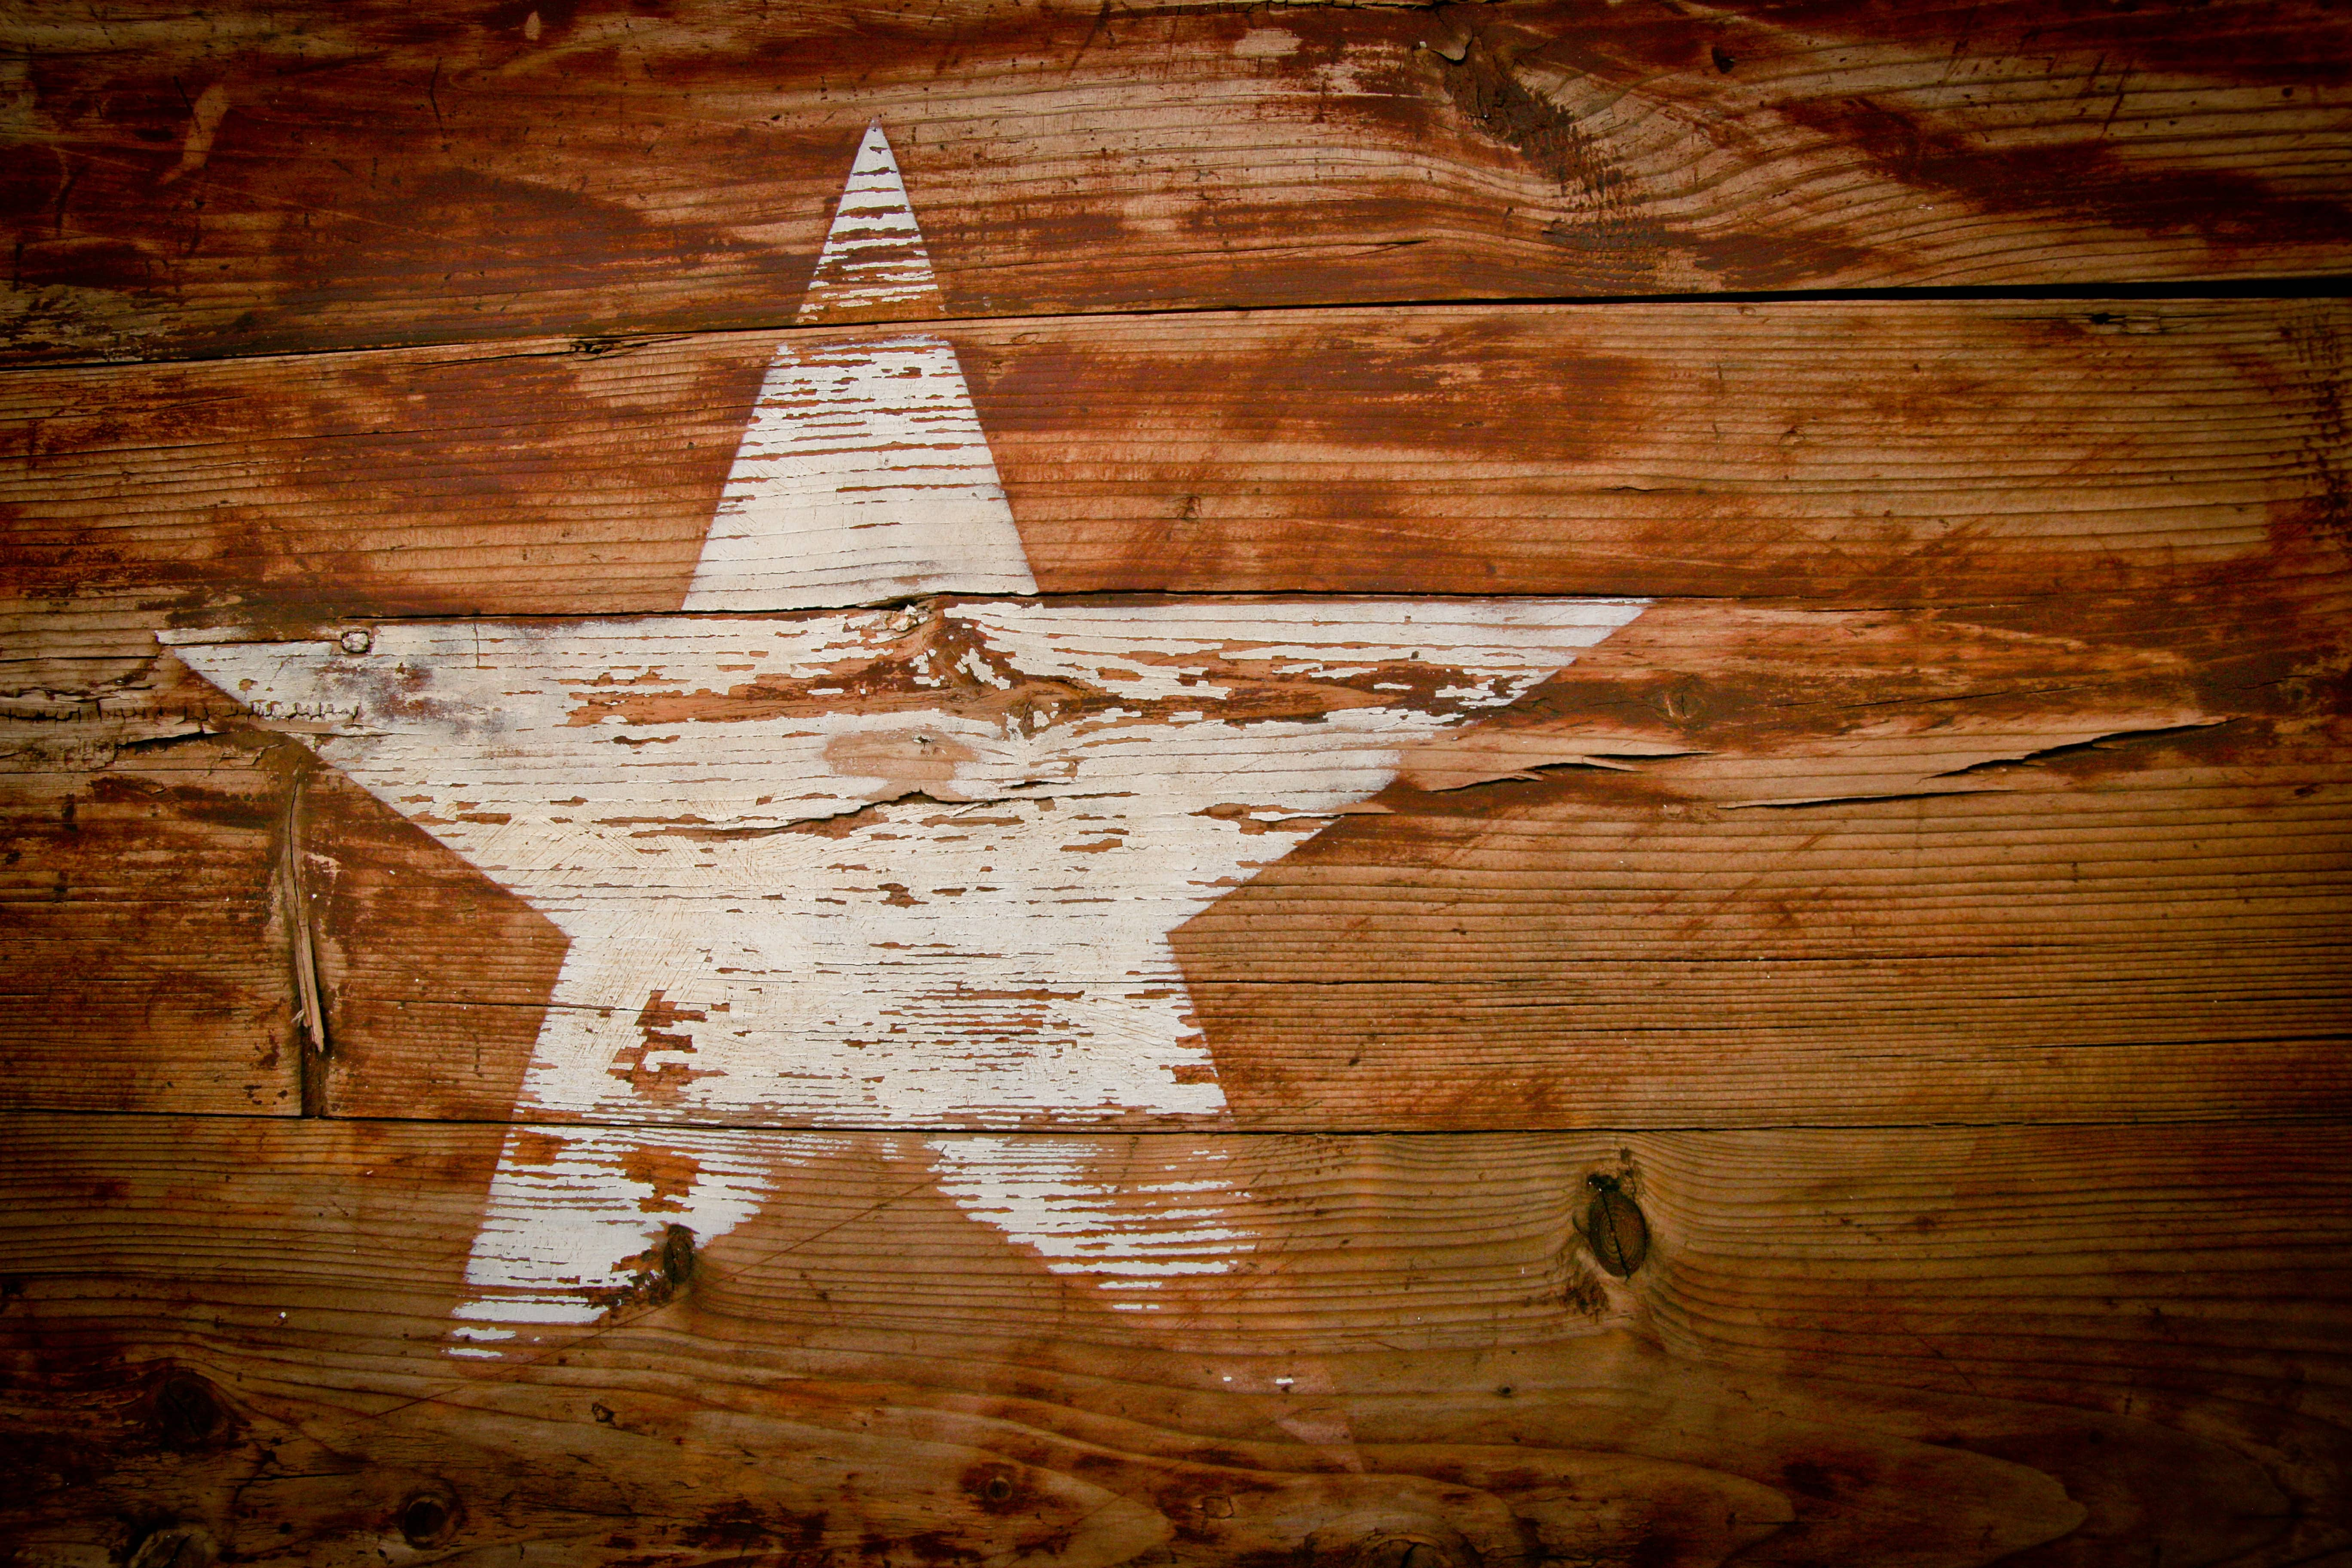 A white star painted on a piece of wood